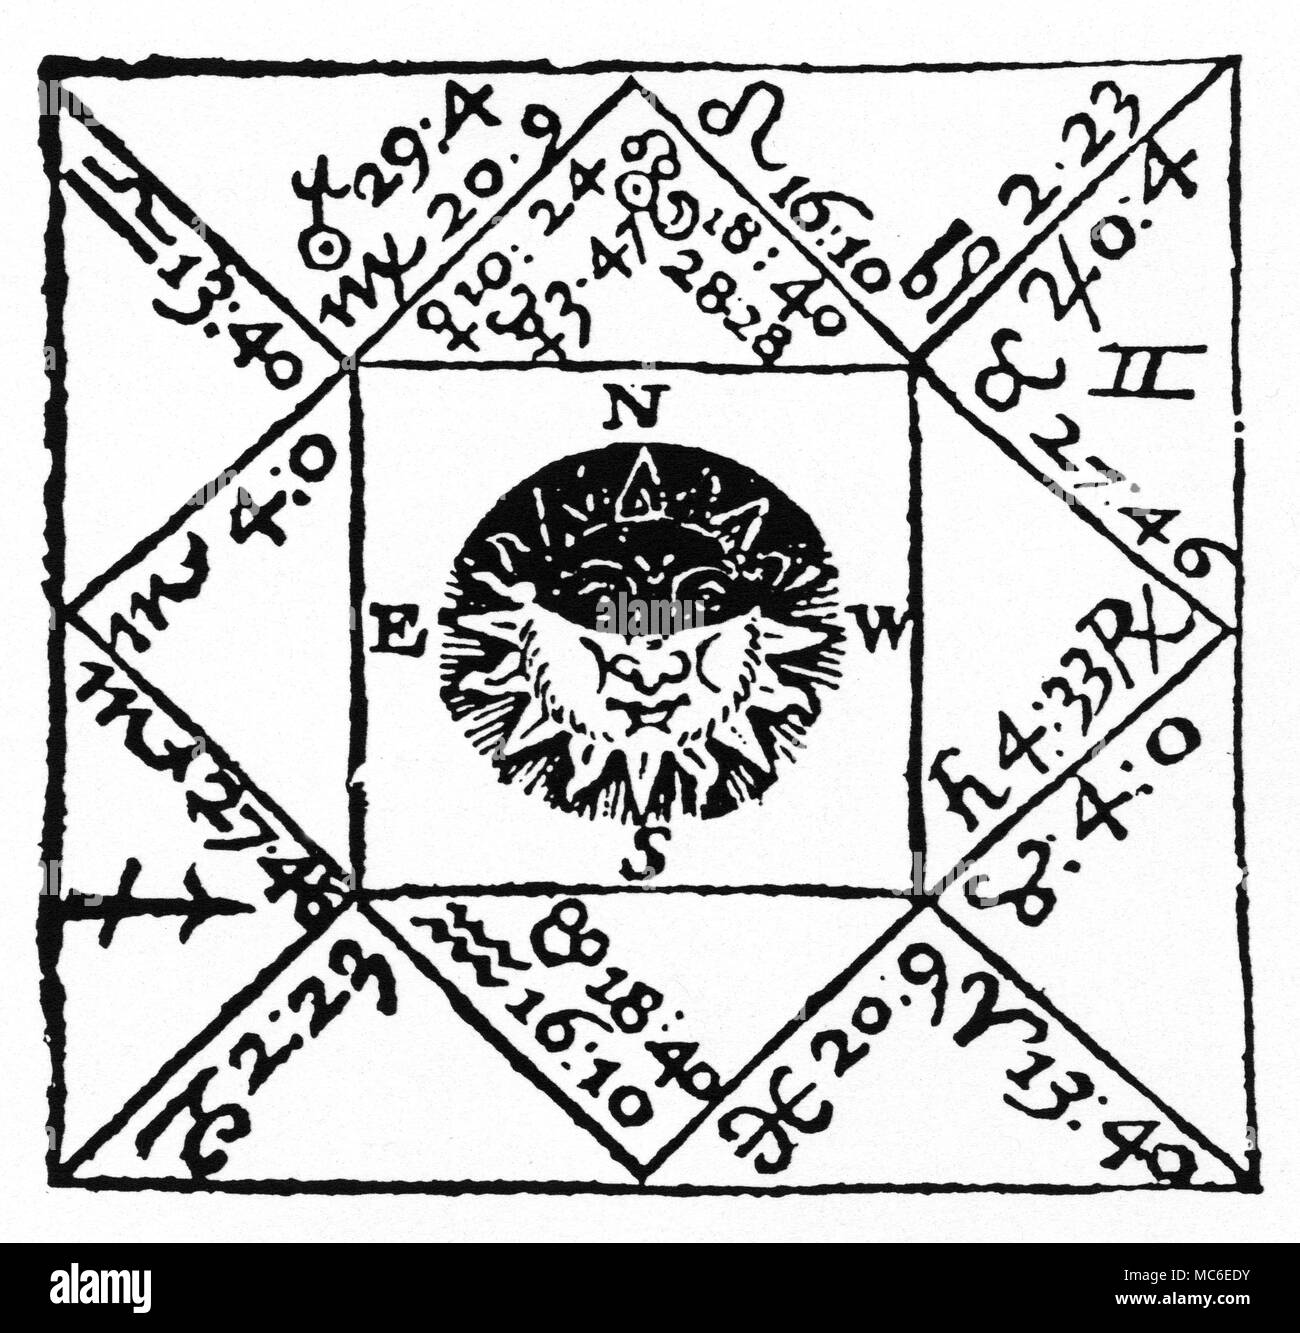 HOROSCOPES Chart of a partial solar eclipse of 11 August 1645 [OS] which was used by William Lilly in connexion with a prophecy concerning the death of King Charles I of England.  For a full survey of the astrology behind Lilly's prediction, see D. Ovason, The Book of the Eclipse, 1999, pp. 145ff.  The woodcut was published in William Lilly, The Starry Messenger. - Stock Image